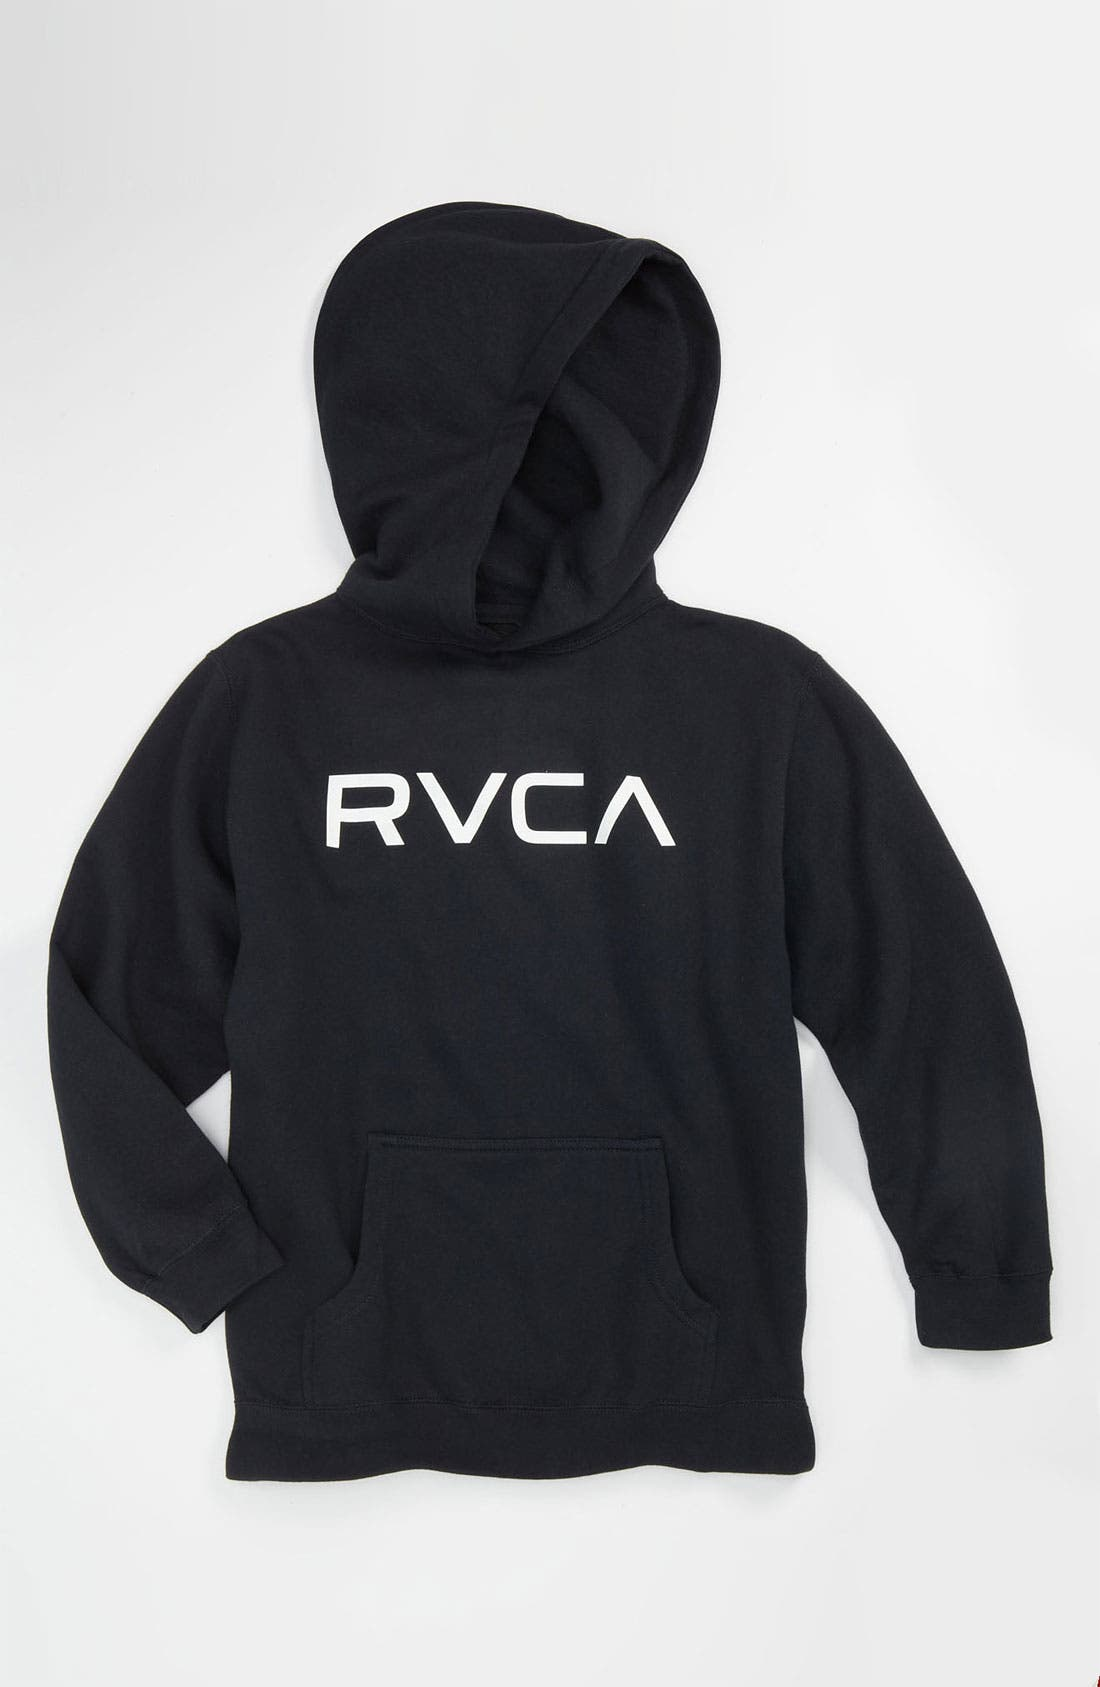 Alternate Image 1 Selected - RVCA 'Big' Hoodie (Big Boys)